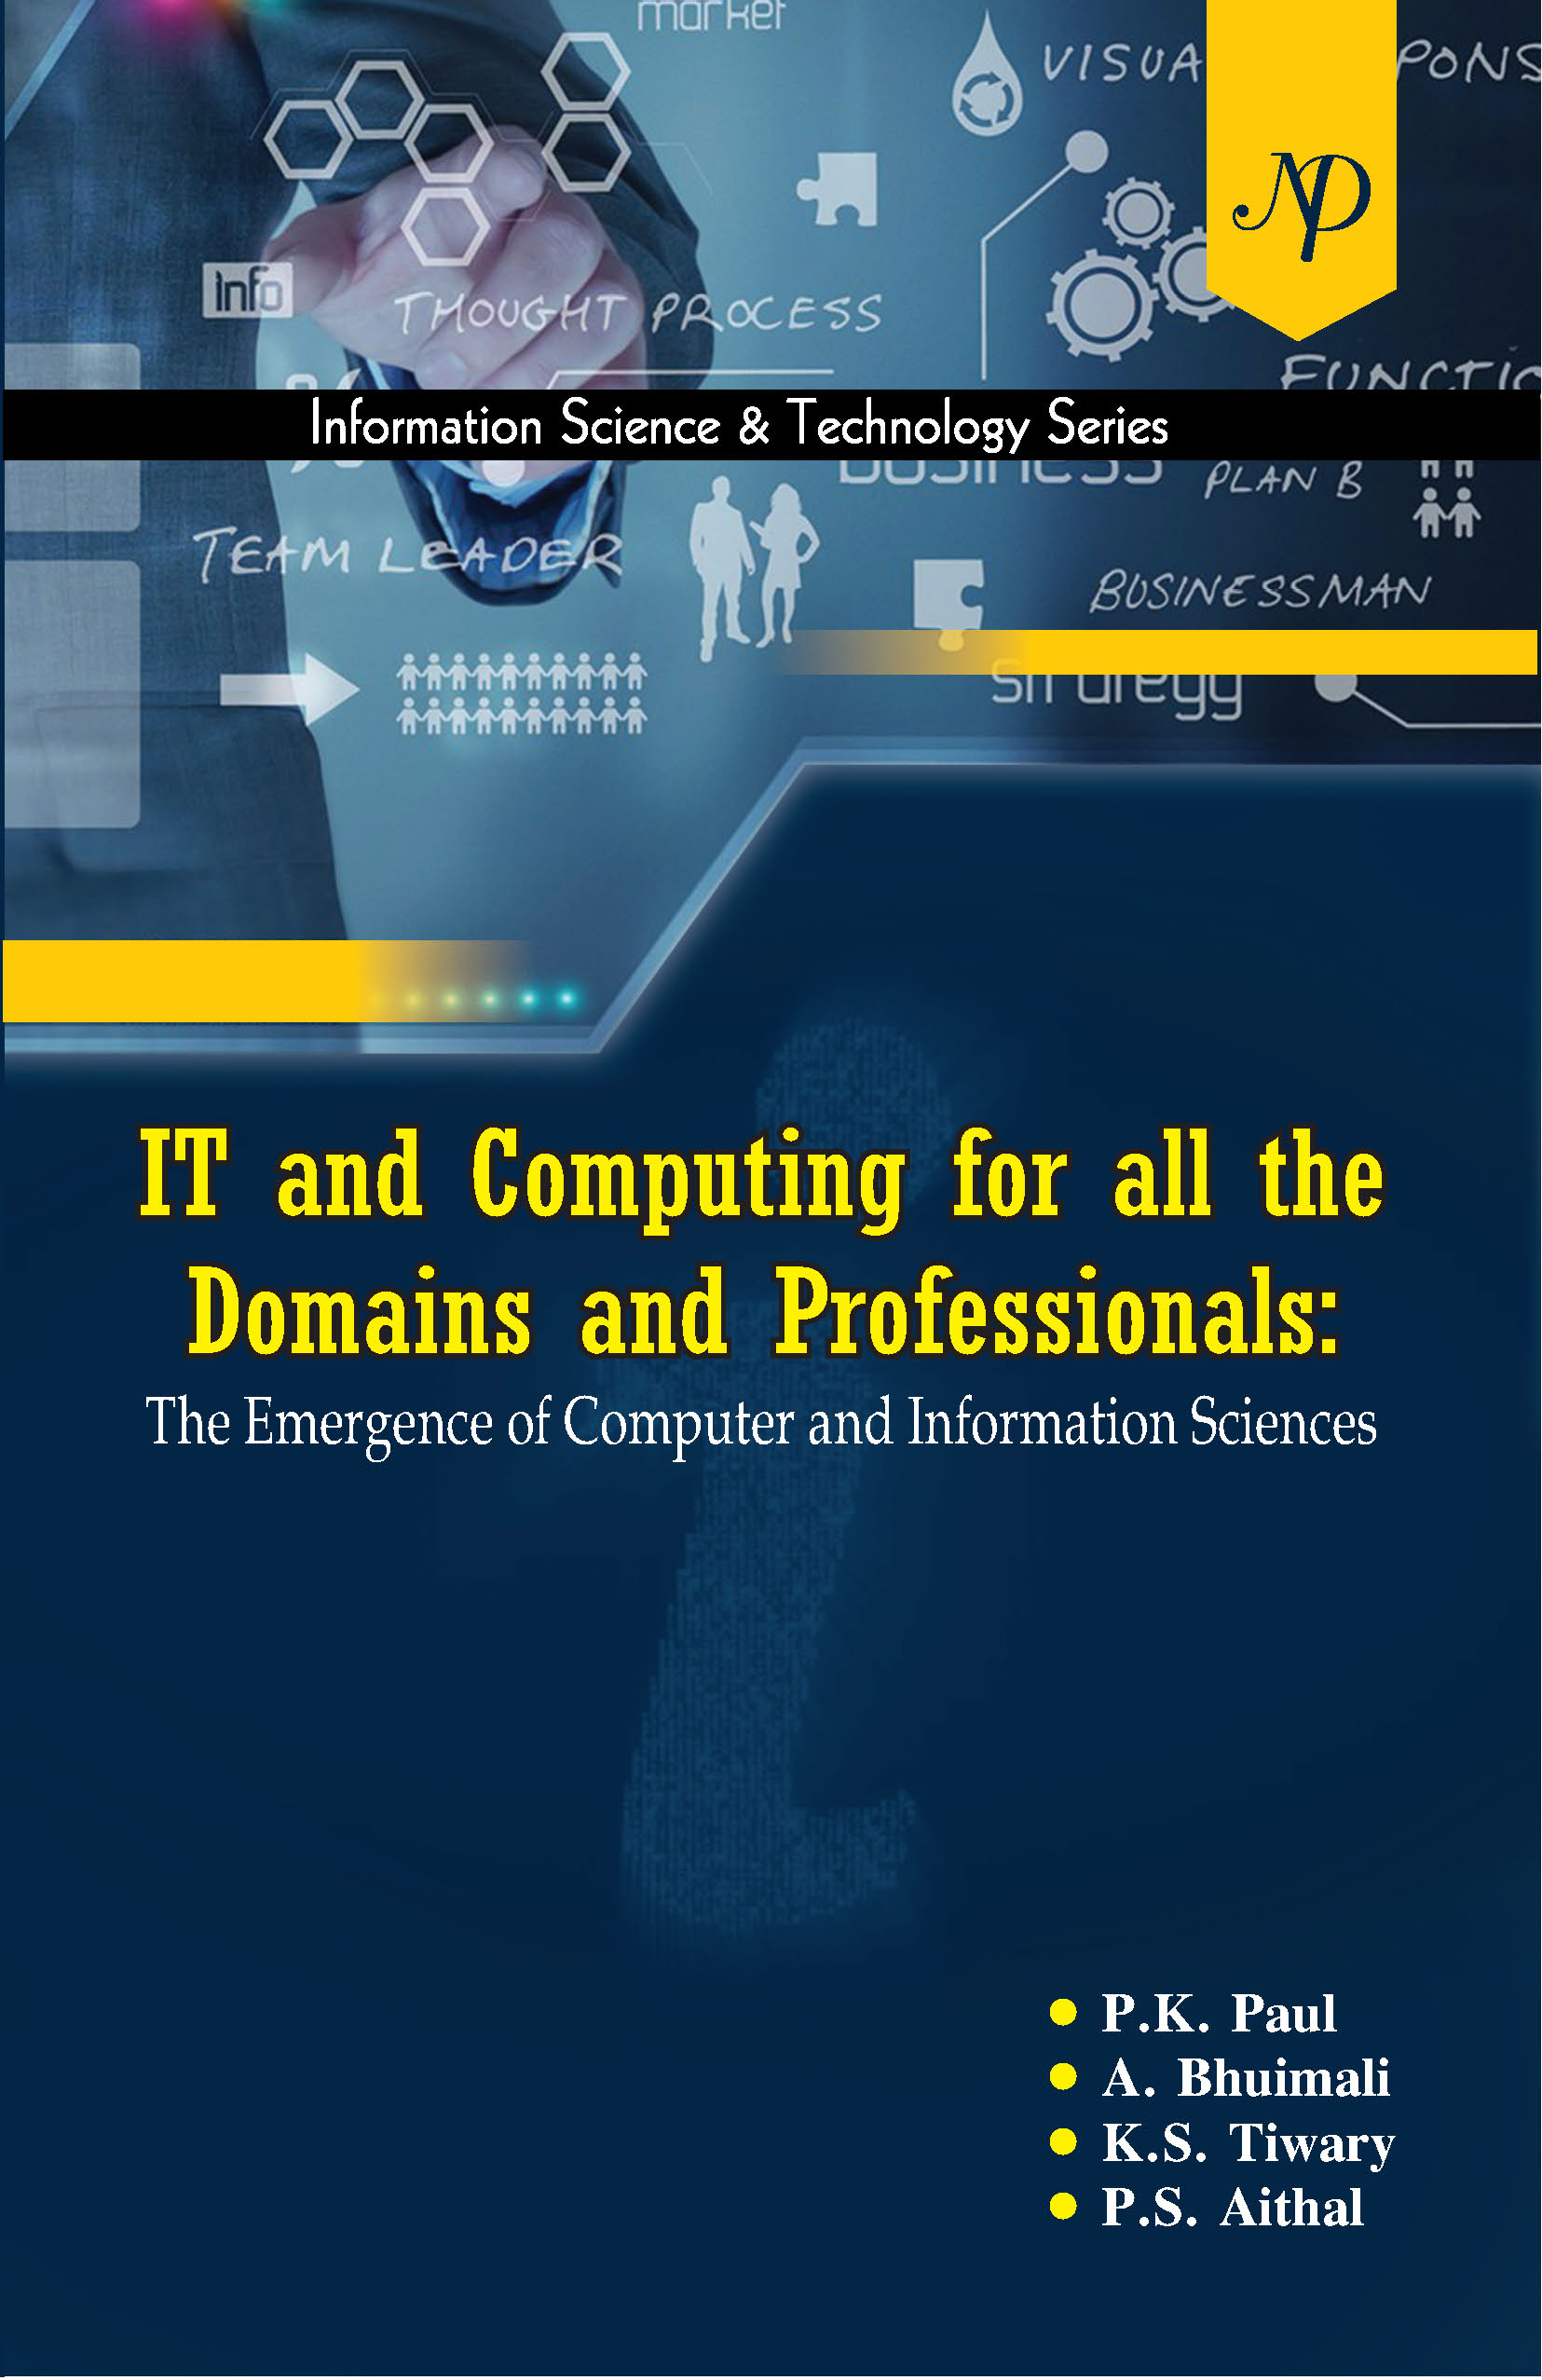 IT and Computing for all the domains by PK Paul.jpg